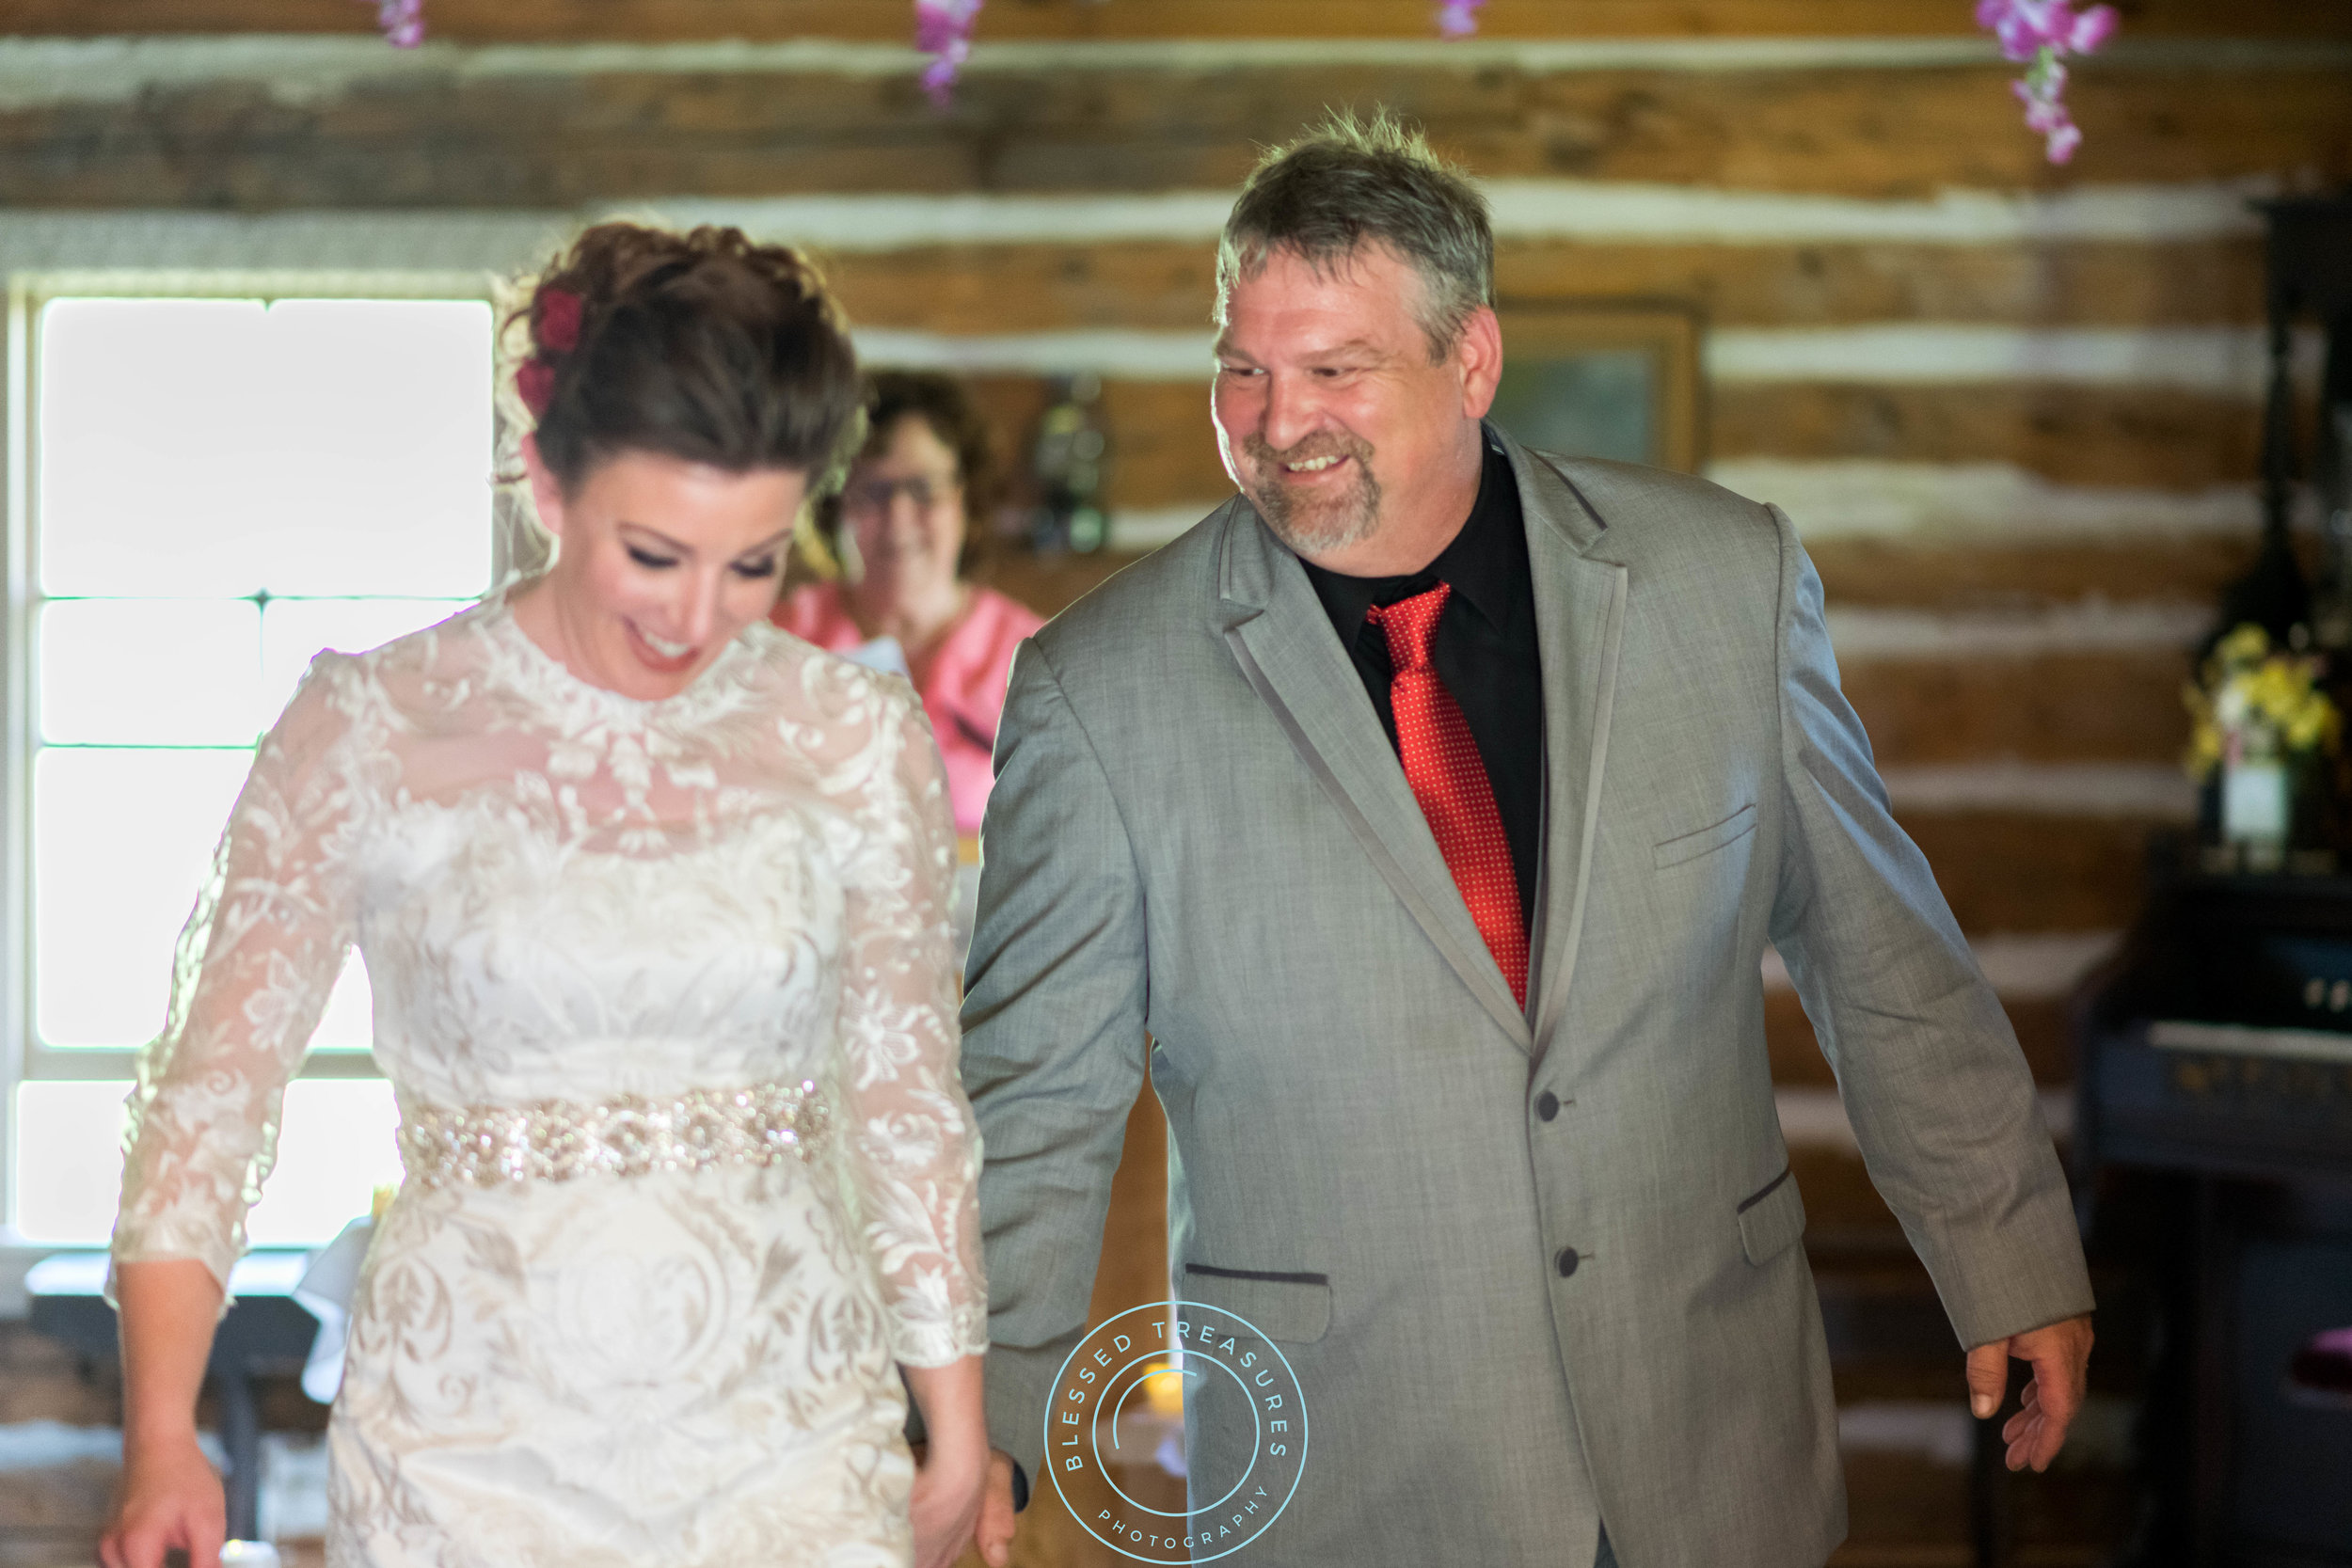 Mansfield township pioneer church crystal falls michigan bride and groom wedding ceremony couple's exit